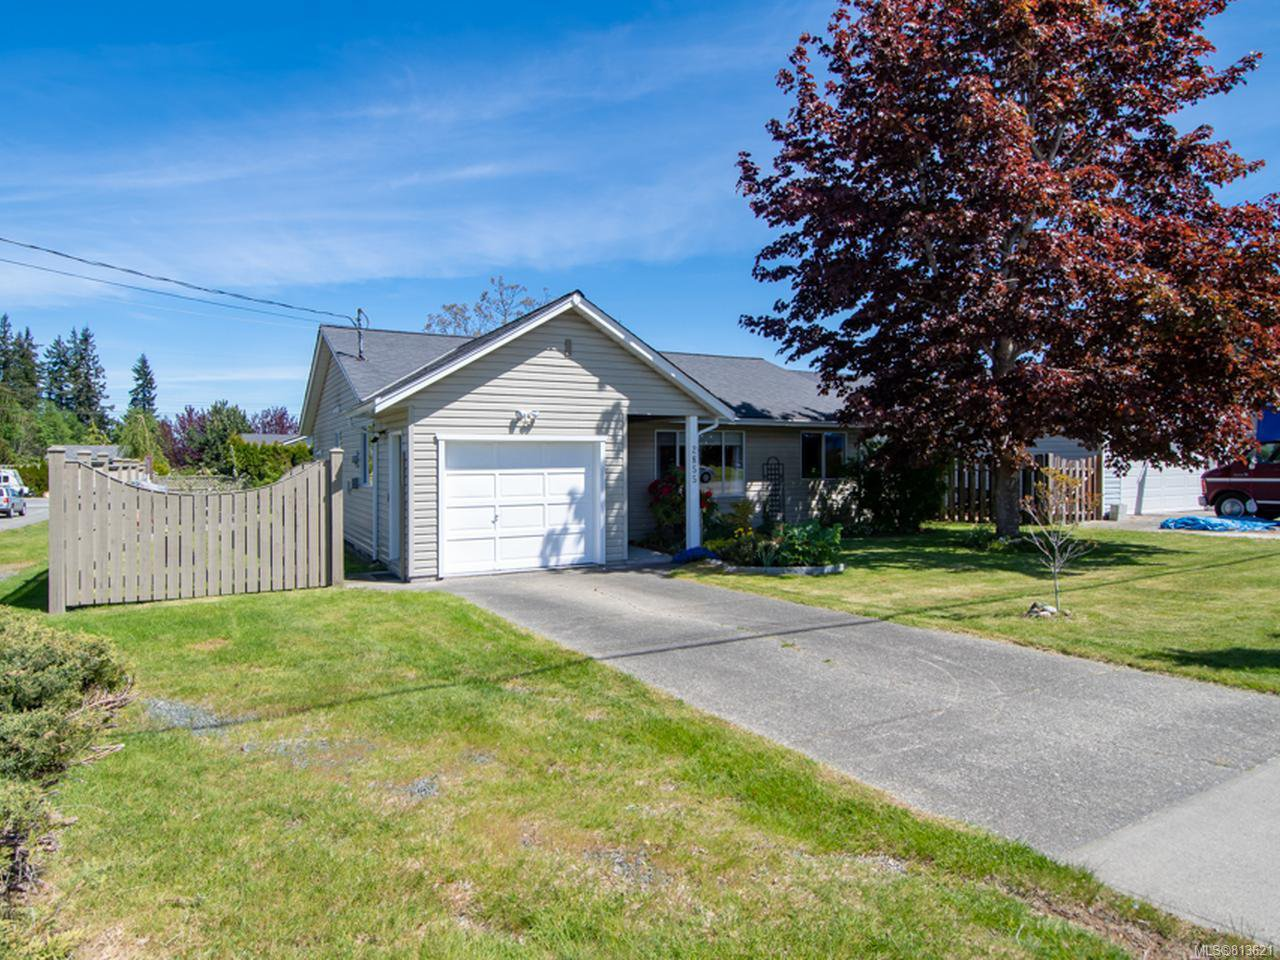 Main Photo: 2855 Fairmile Rd in CAMPBELL RIVER: CR Willow Point House for sale (Campbell River)  : MLS®# 813621